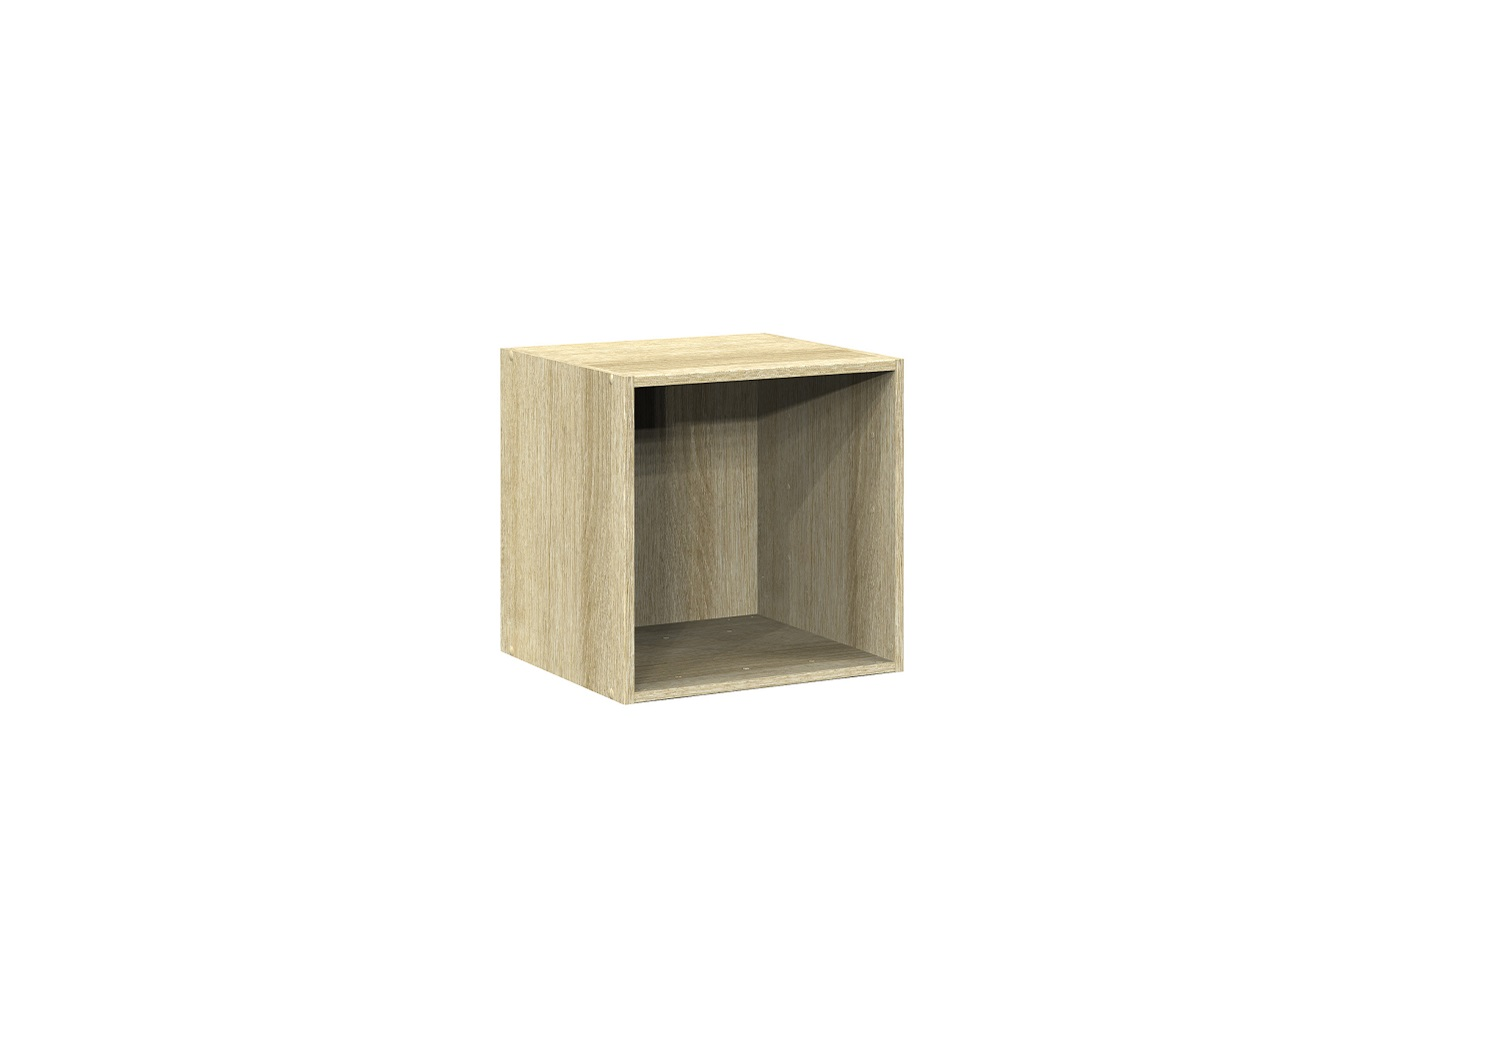 Bilrich Storage Furniture - Multi Kaz 1x1 Cube Oak